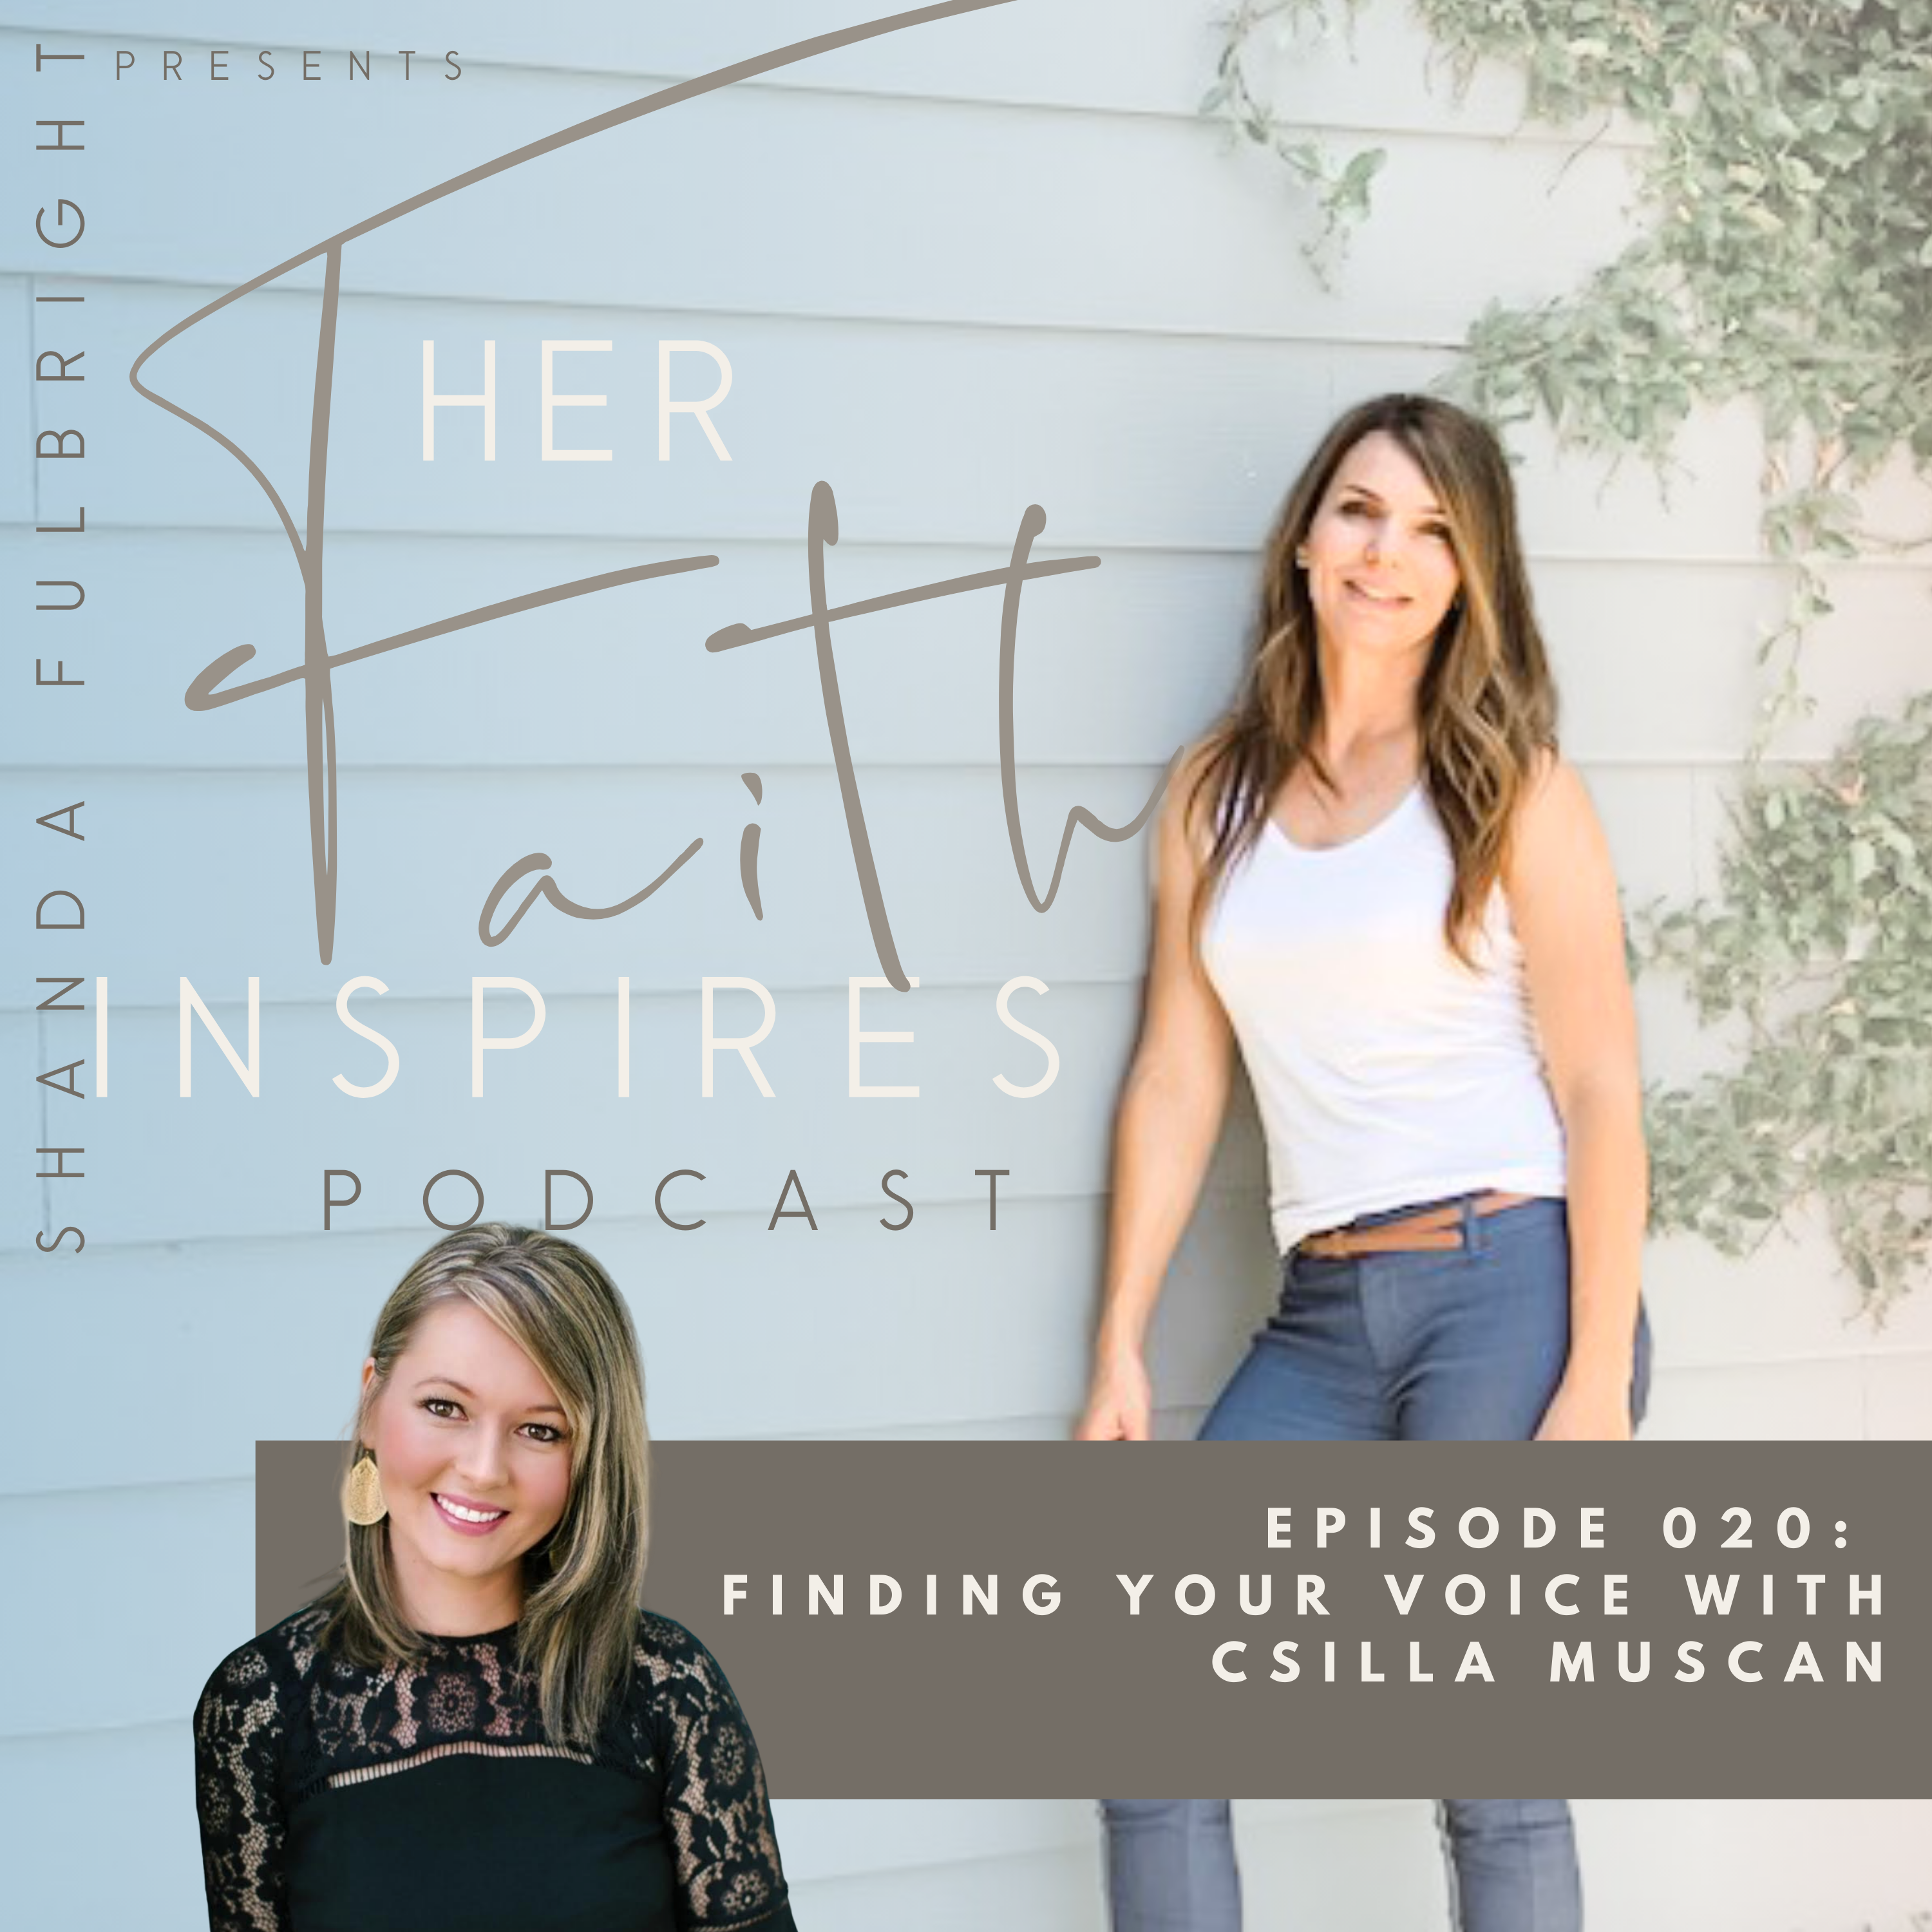 SF Podcast Episoe 20 - HER FAITH INSPIRES EPISODE 020 : Finding your voice with Csilla Muscan